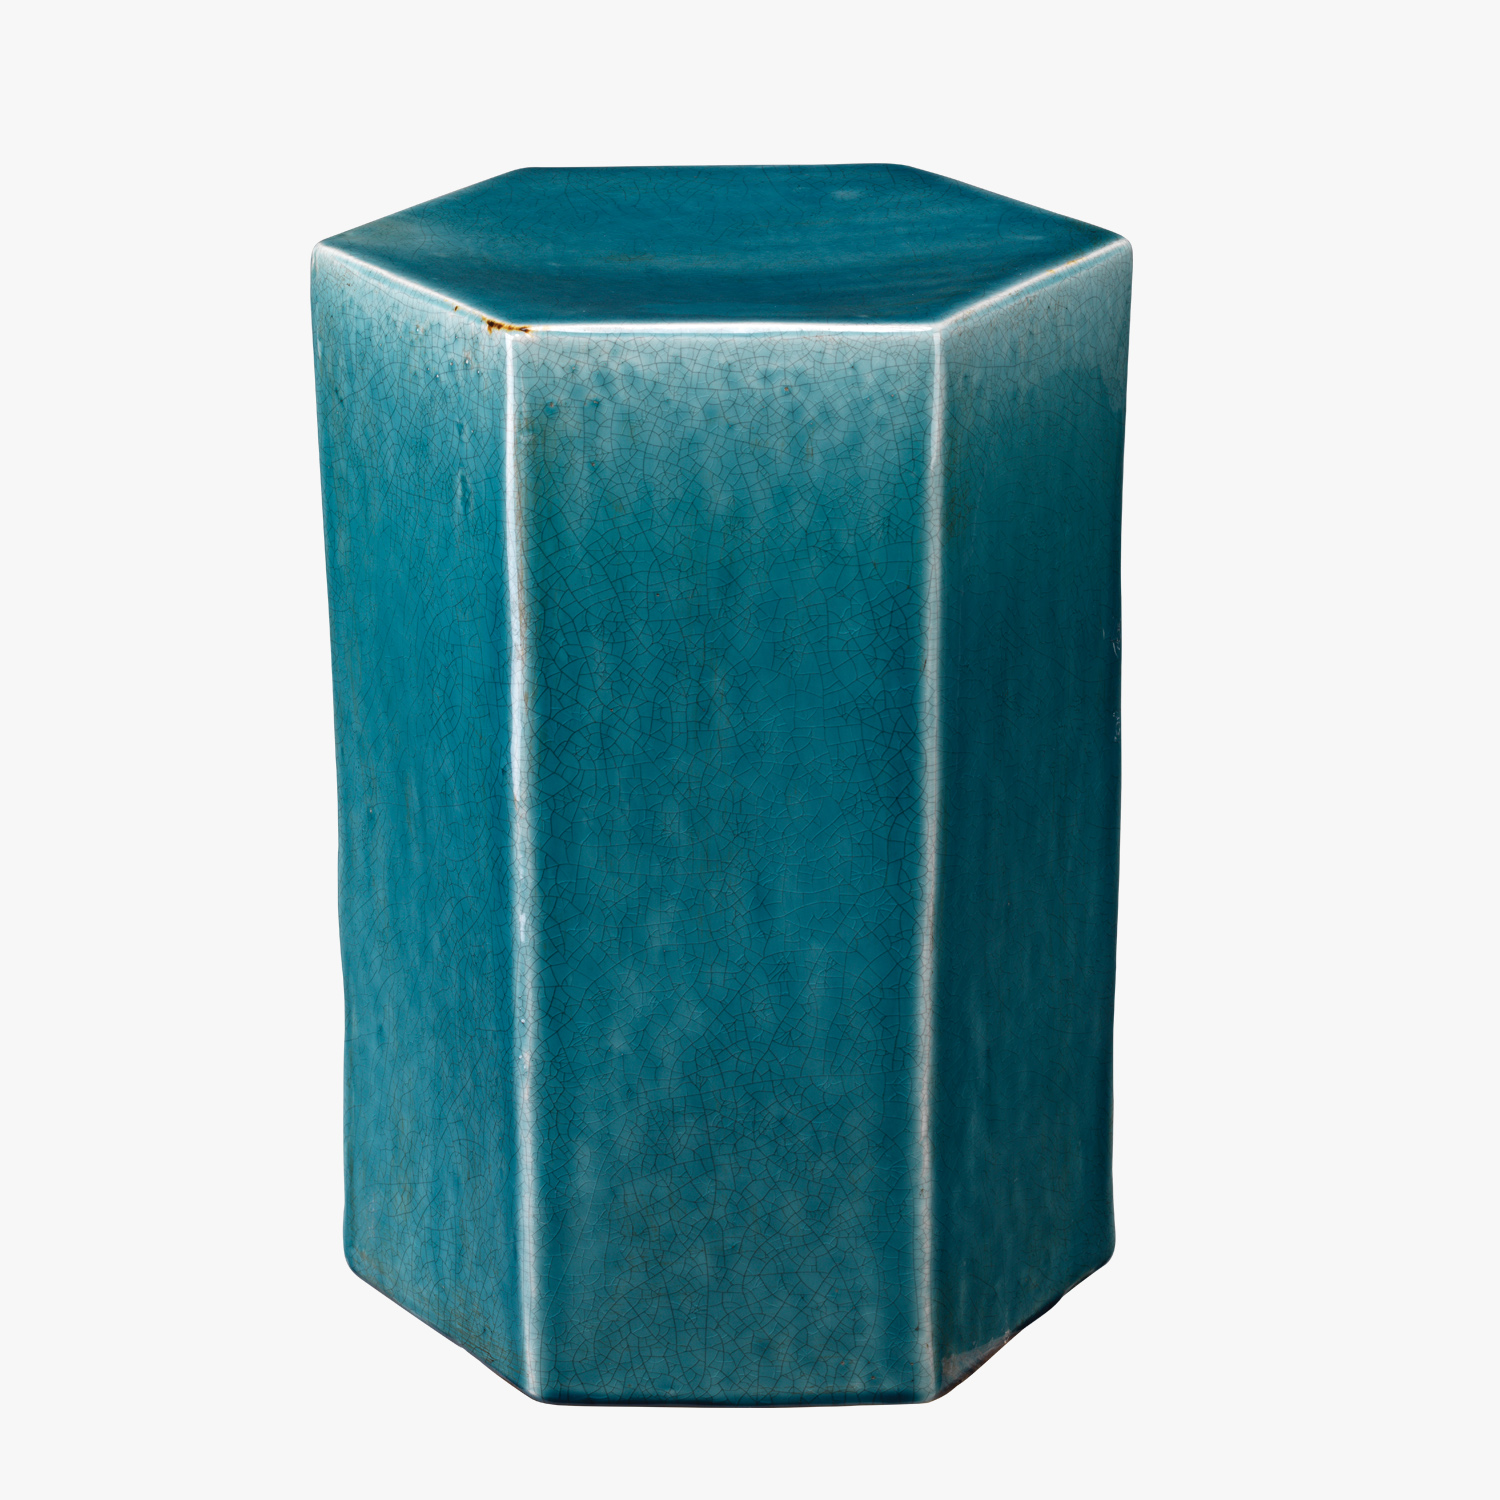 lorenzo azure ceramic side table accent tables dear keaton blue farmhouse tall storage cabinet with doors target bar tiffany sofa drawers brass green lamp kitchen knobs and pulls